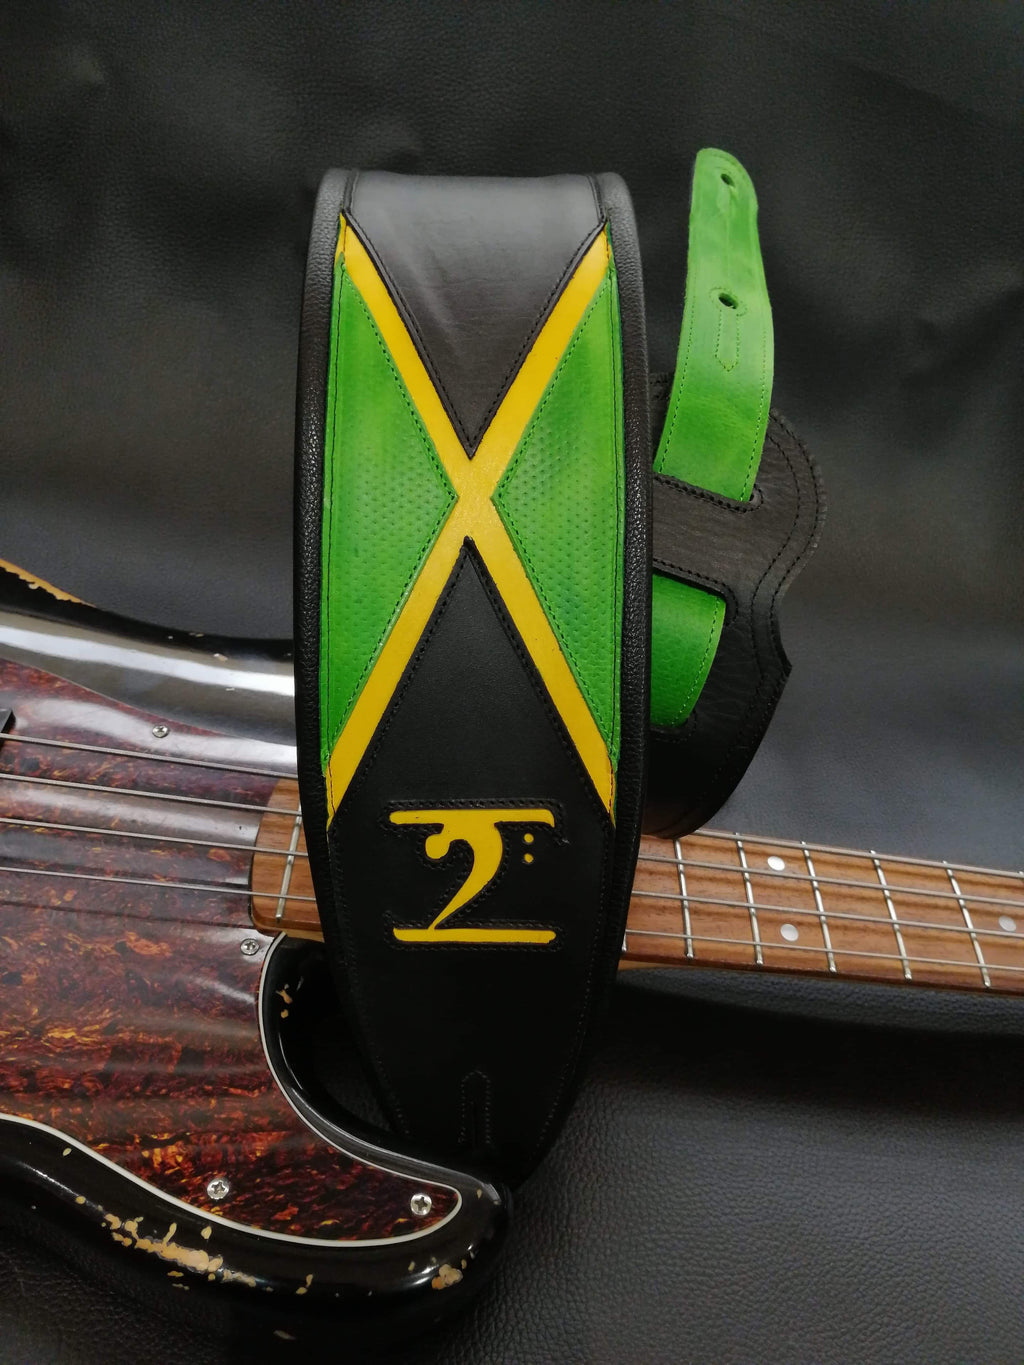 JAMAICA STRAP - Lathon Bass Wear